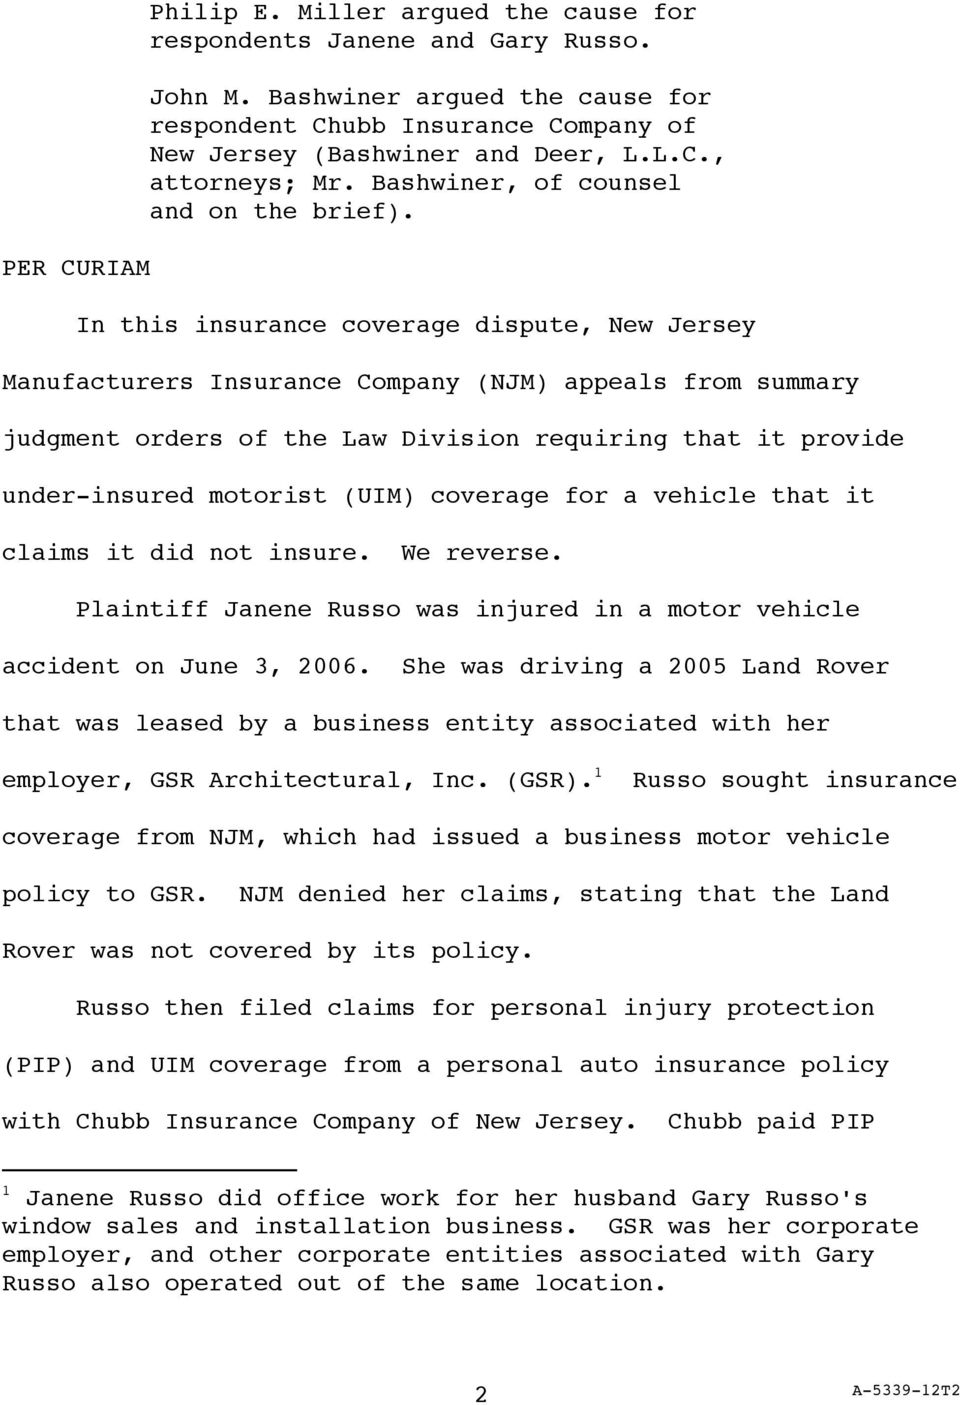 In this insurance coverage dispute, New Jersey Manufacturers Insurance Company (NJM) appeals from summary judgment orders of the Law Division requiring that it provide under-insured motorist (UIM)